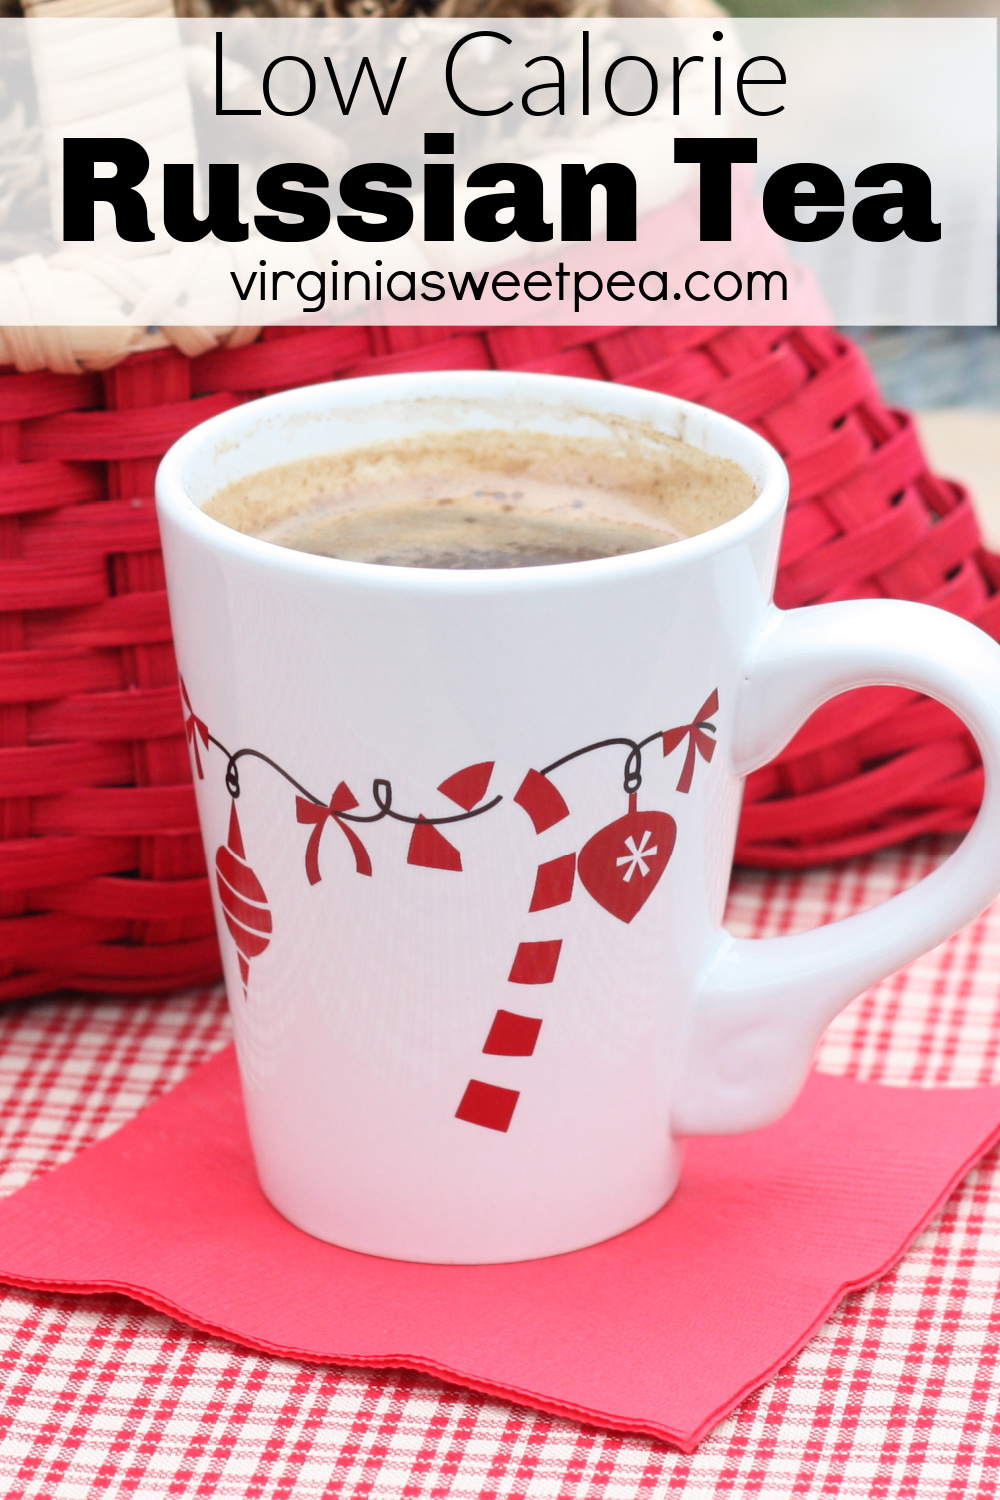 Low calorie Russian Tea in a mug decorated with candy canes and Christmas ornaments